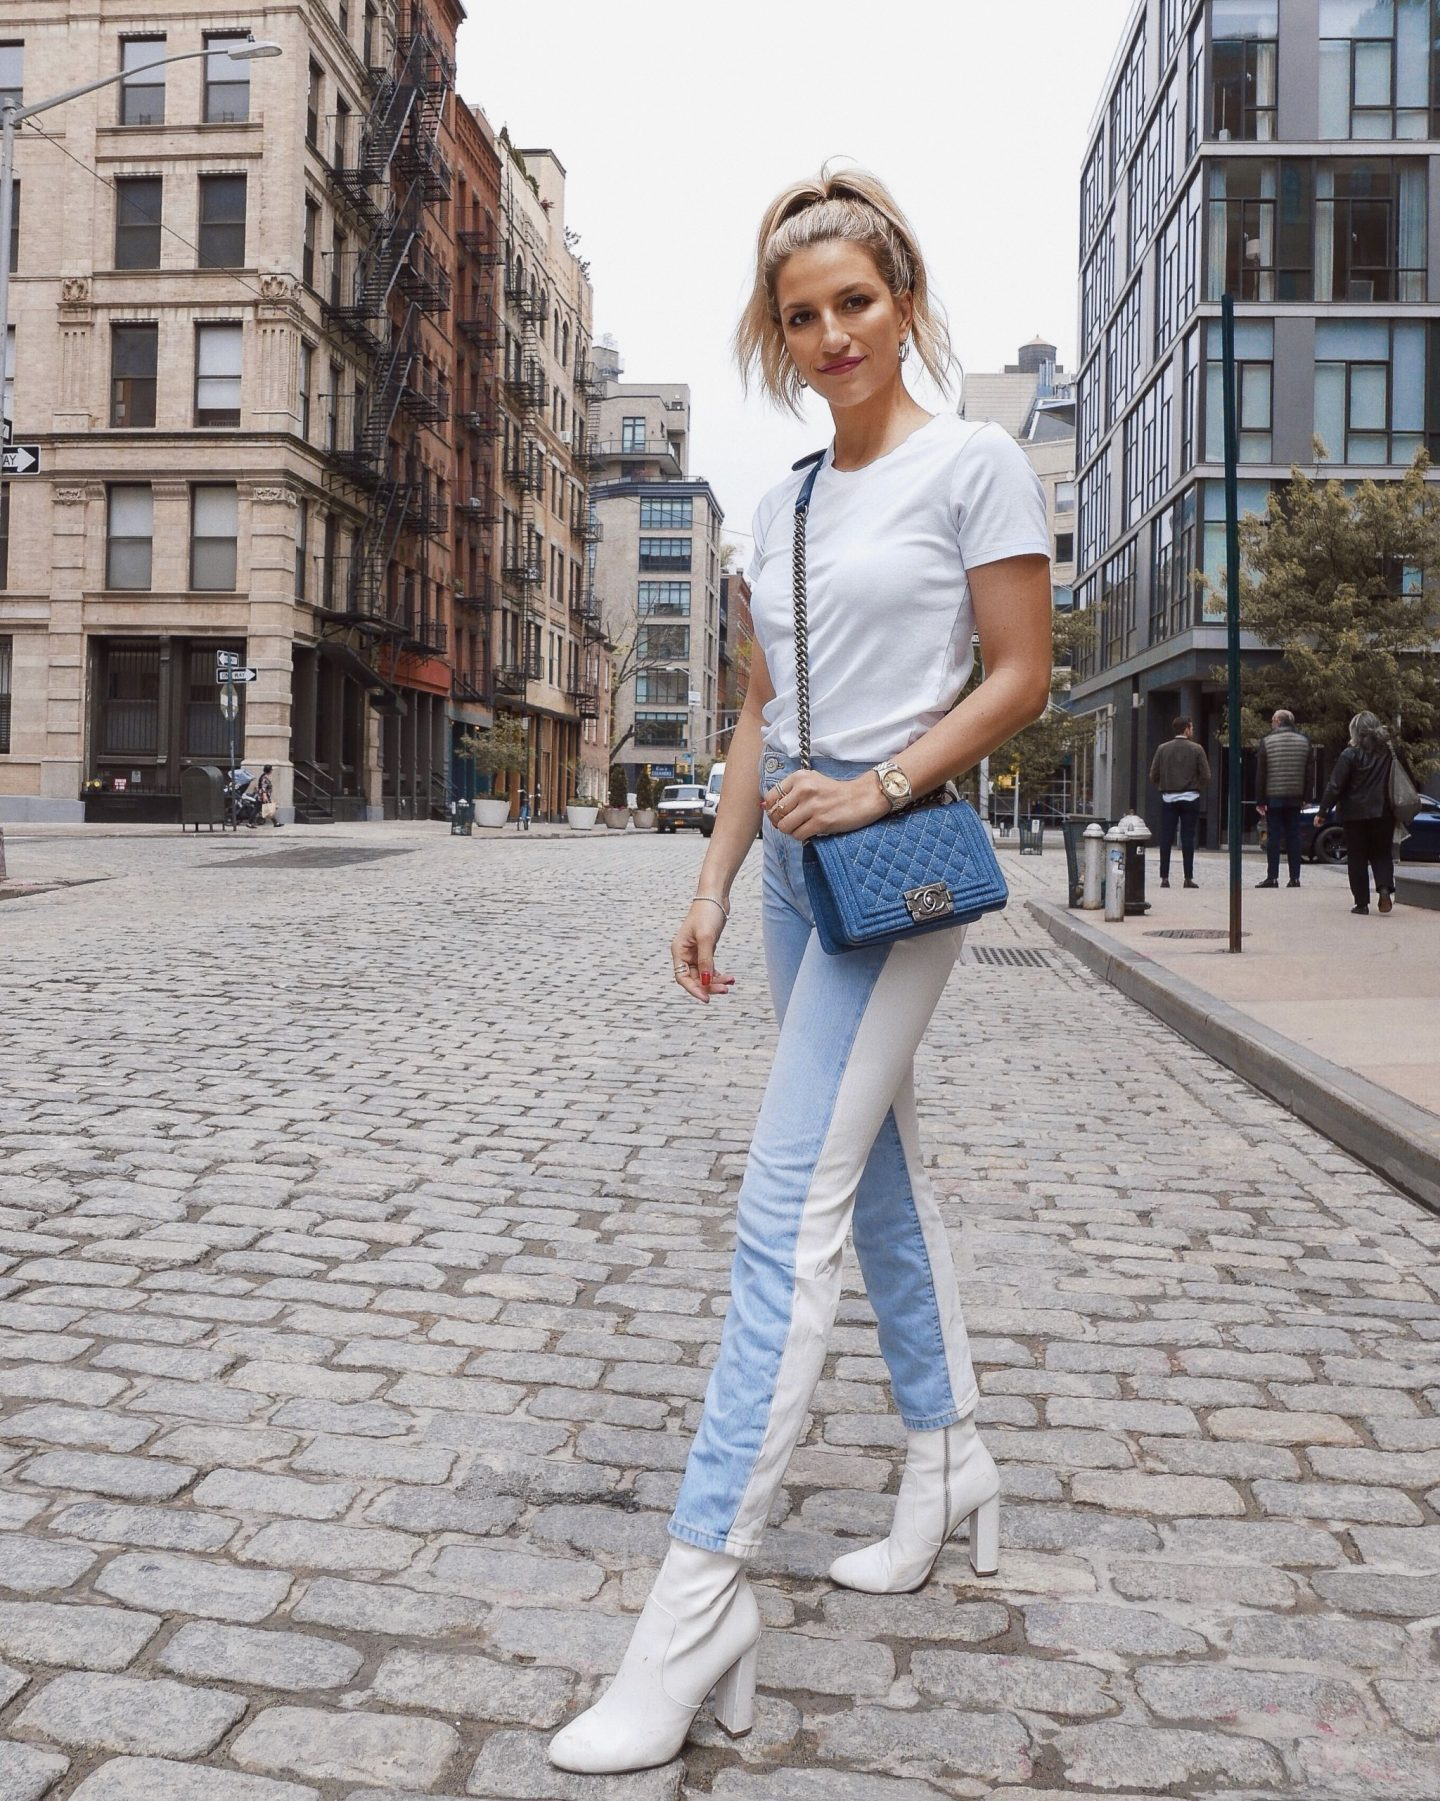 Cassandra DiMicco, Cass DiMicco, Dressed For Dreams, NYC, New York City, New York, Street Style NYC, Street Style 2018, NYC Street Style Street Style Outfits, 2018 Trends, NYC Fashion Blogger, joie jeans, color block jeans, white booties, denim boy bag, Tribeca